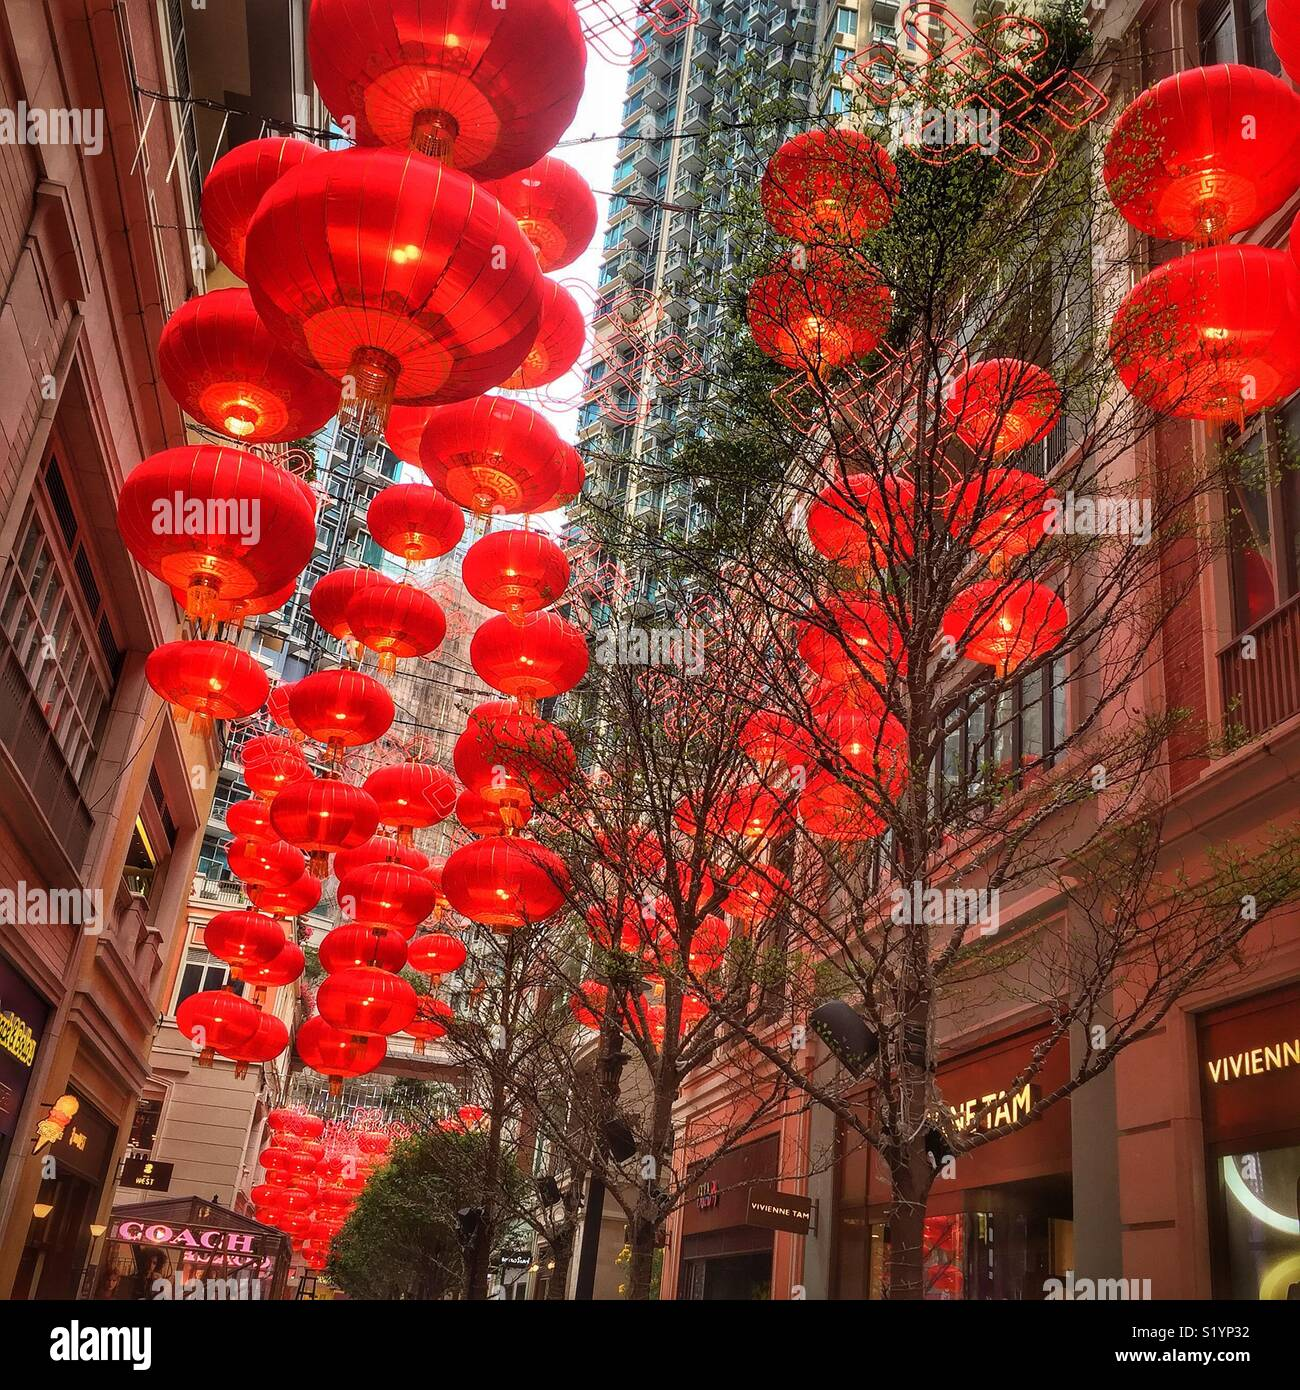 Red lanterns traditional decorations for chinese new year in lee red lanterns traditional decorations for chinese new year in lee tung avenue a shopping mall opened in 2015 on the site of old lee tung street wedding junglespirit Choice Image